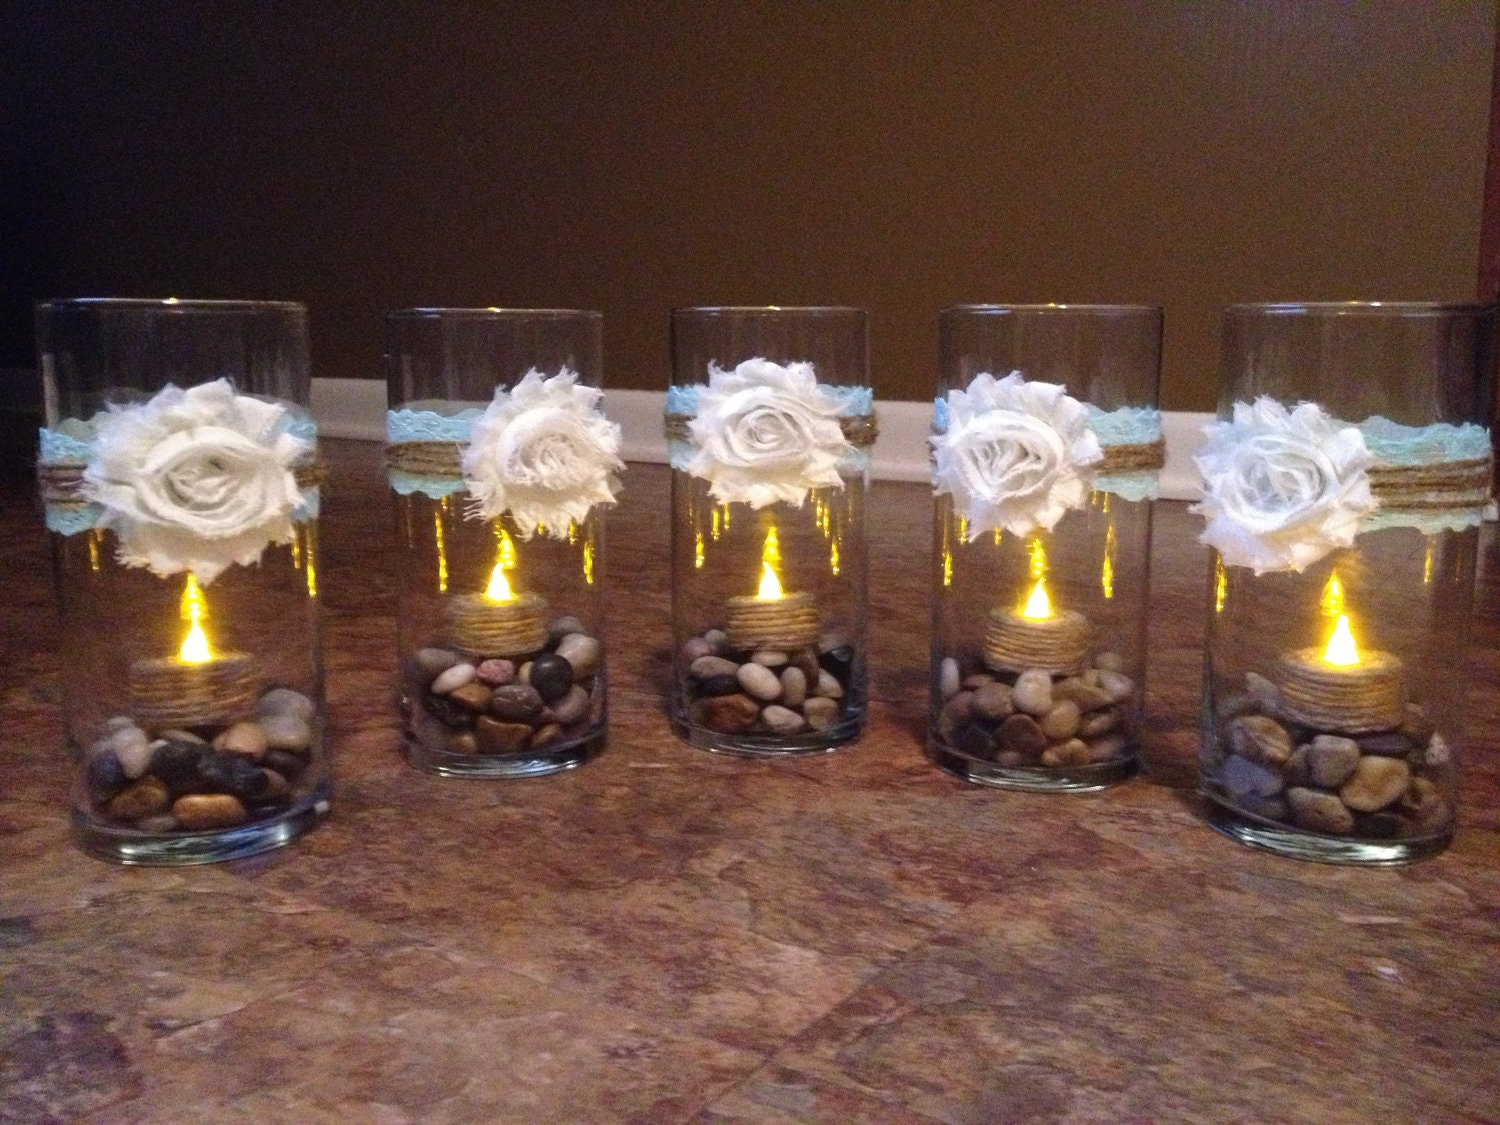 Vase centerpieces with rocks and led tea lights by leahluxe